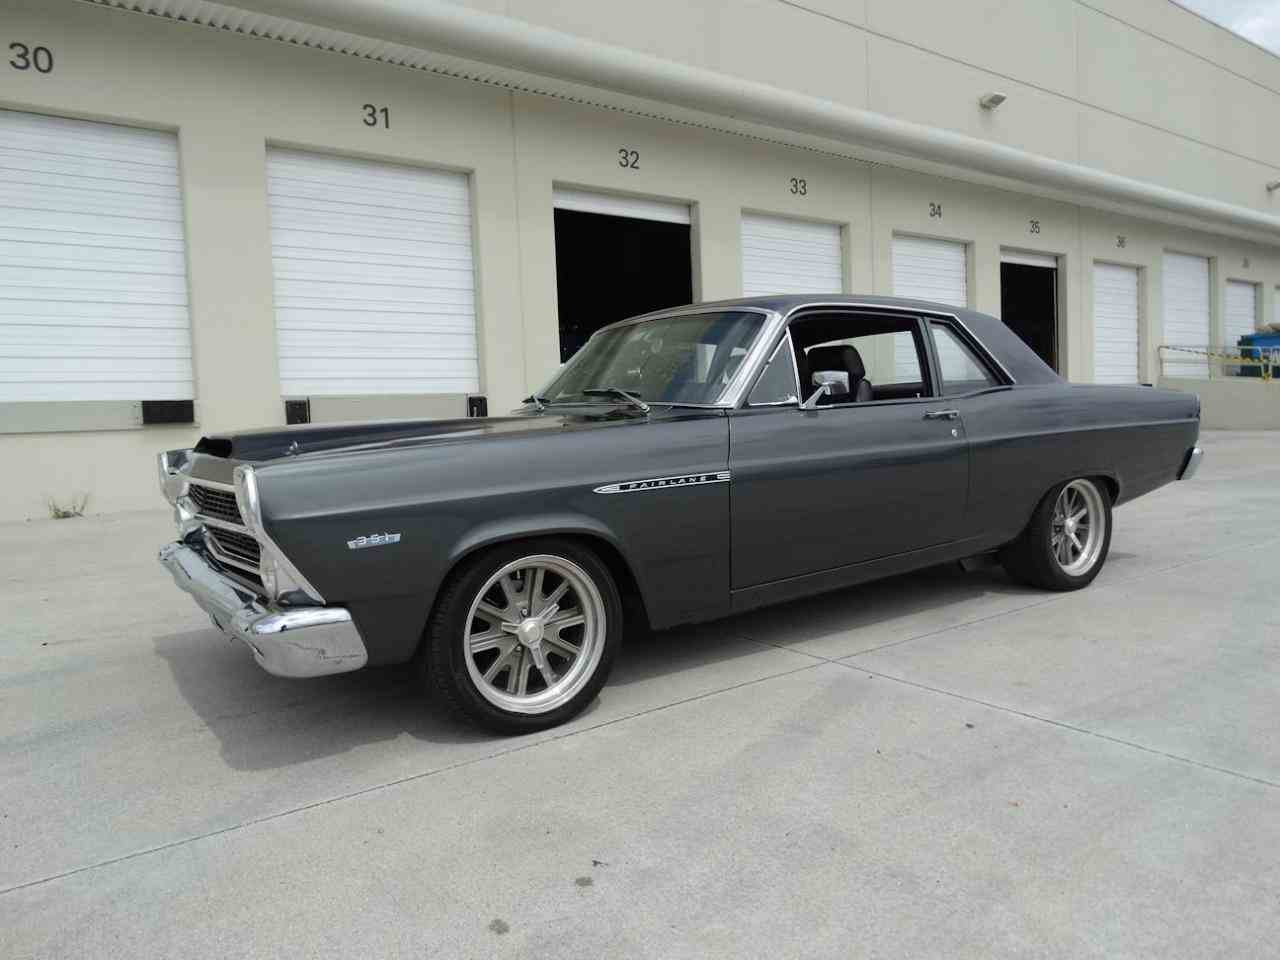 Large Picture of Classic '67 Fairlane located in Florida - $27,995.00 Offered by Gateway Classic Cars - Fort Lauderdale - L7H3